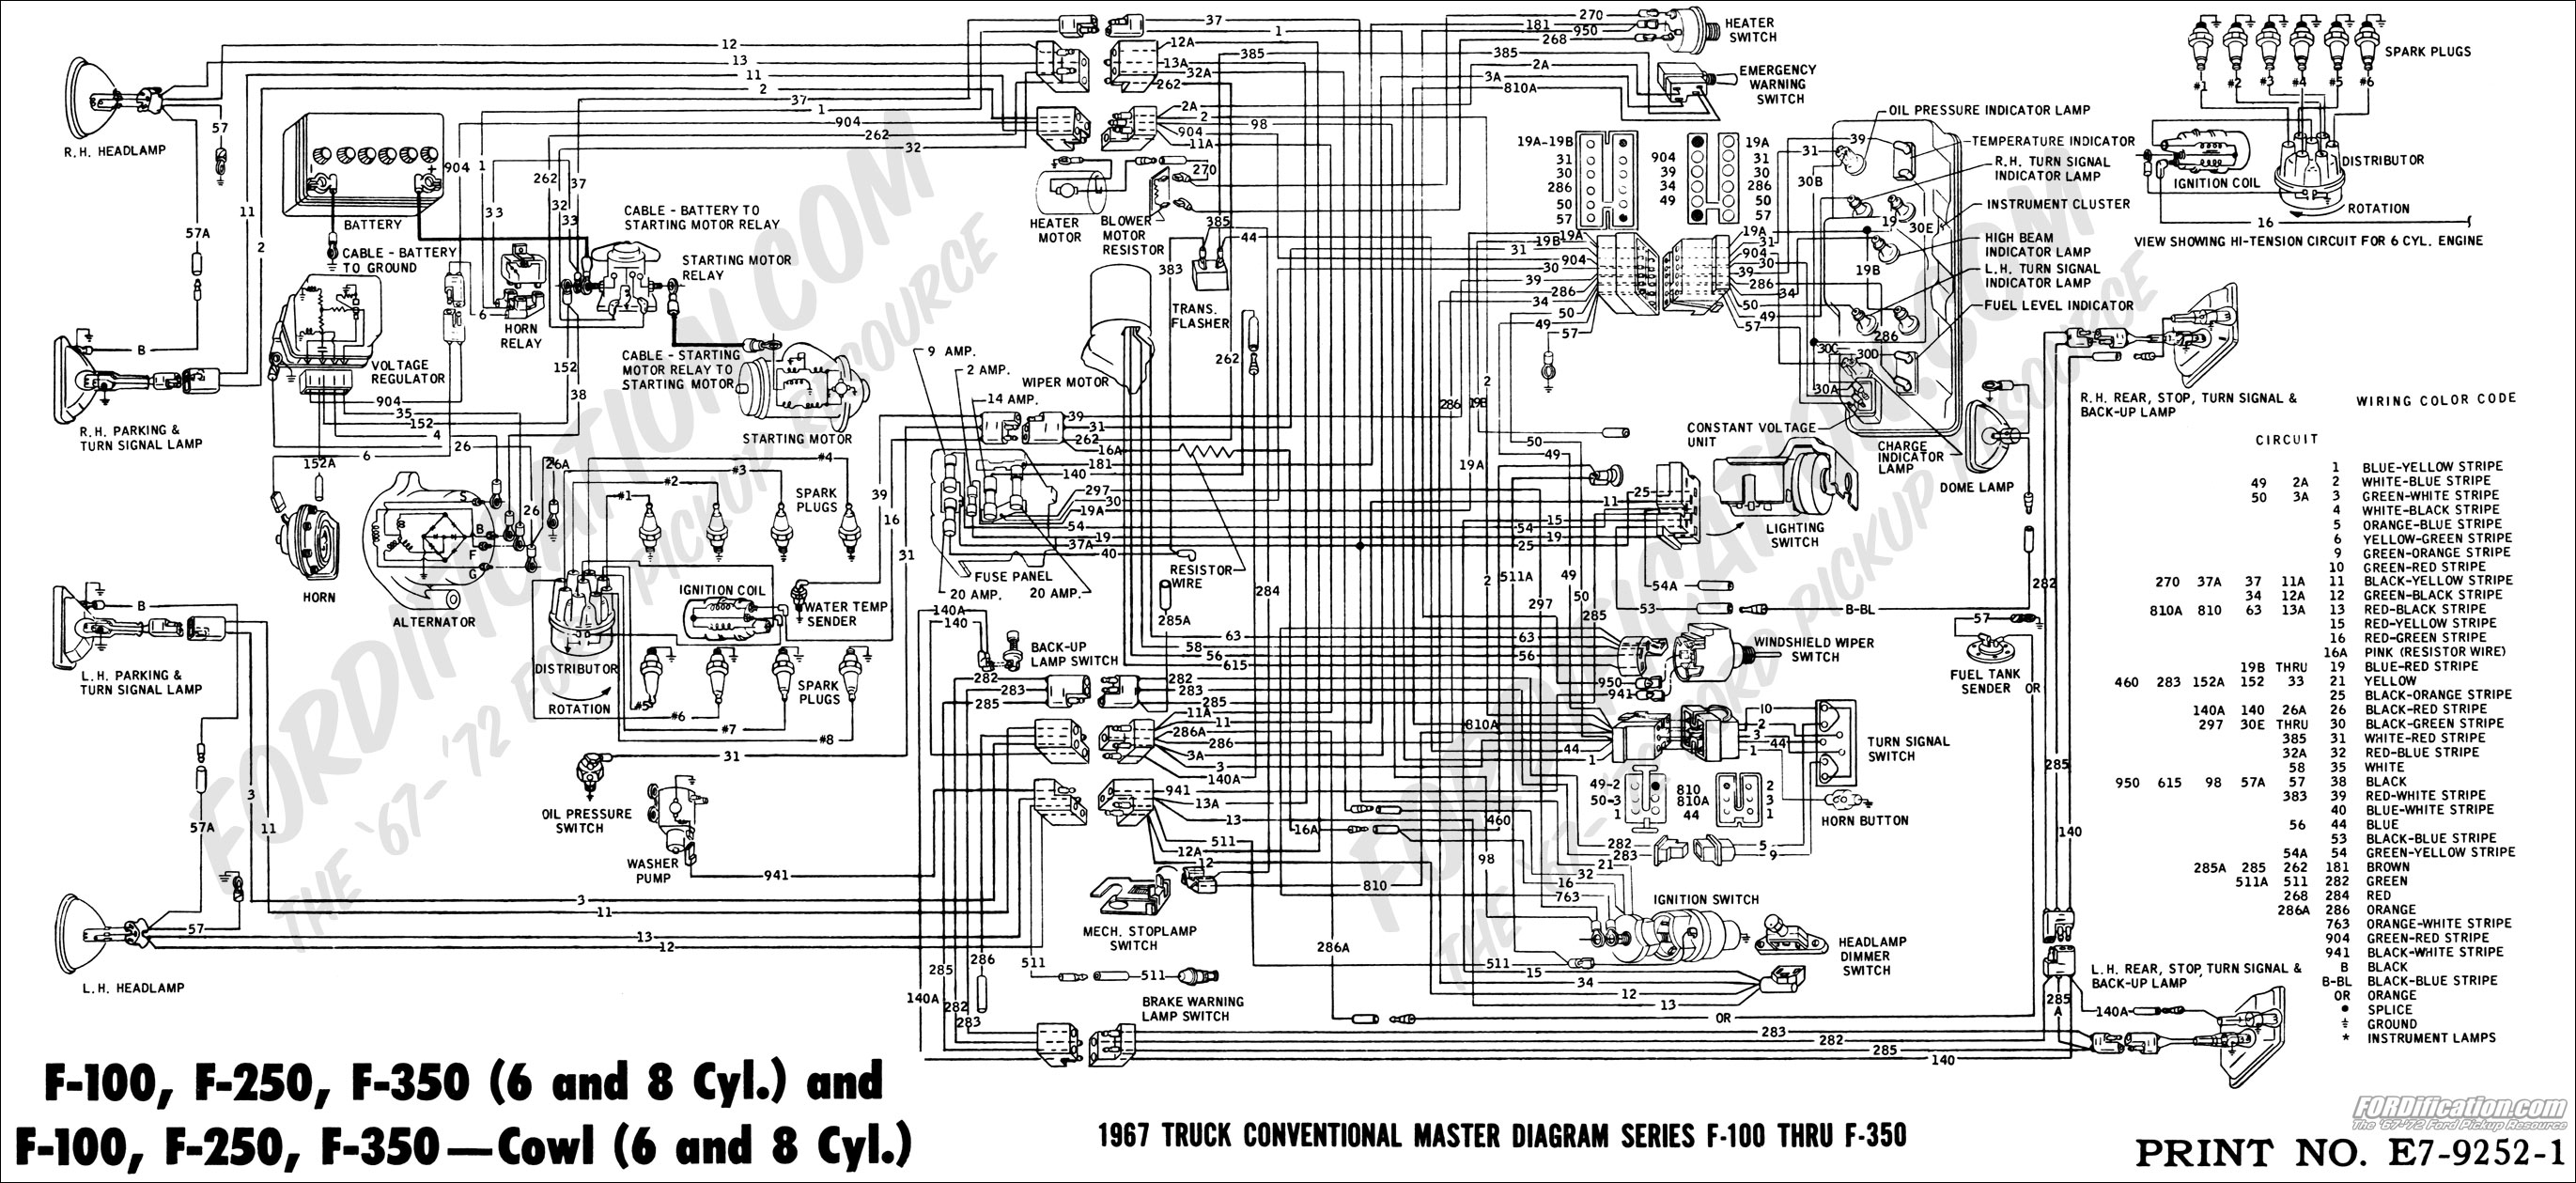 67masterdiagram 1983 ford f150 wiring diagram f150 alternator wiring diagram 07 f150 air conditioner wiring diagram at readyjetset.co